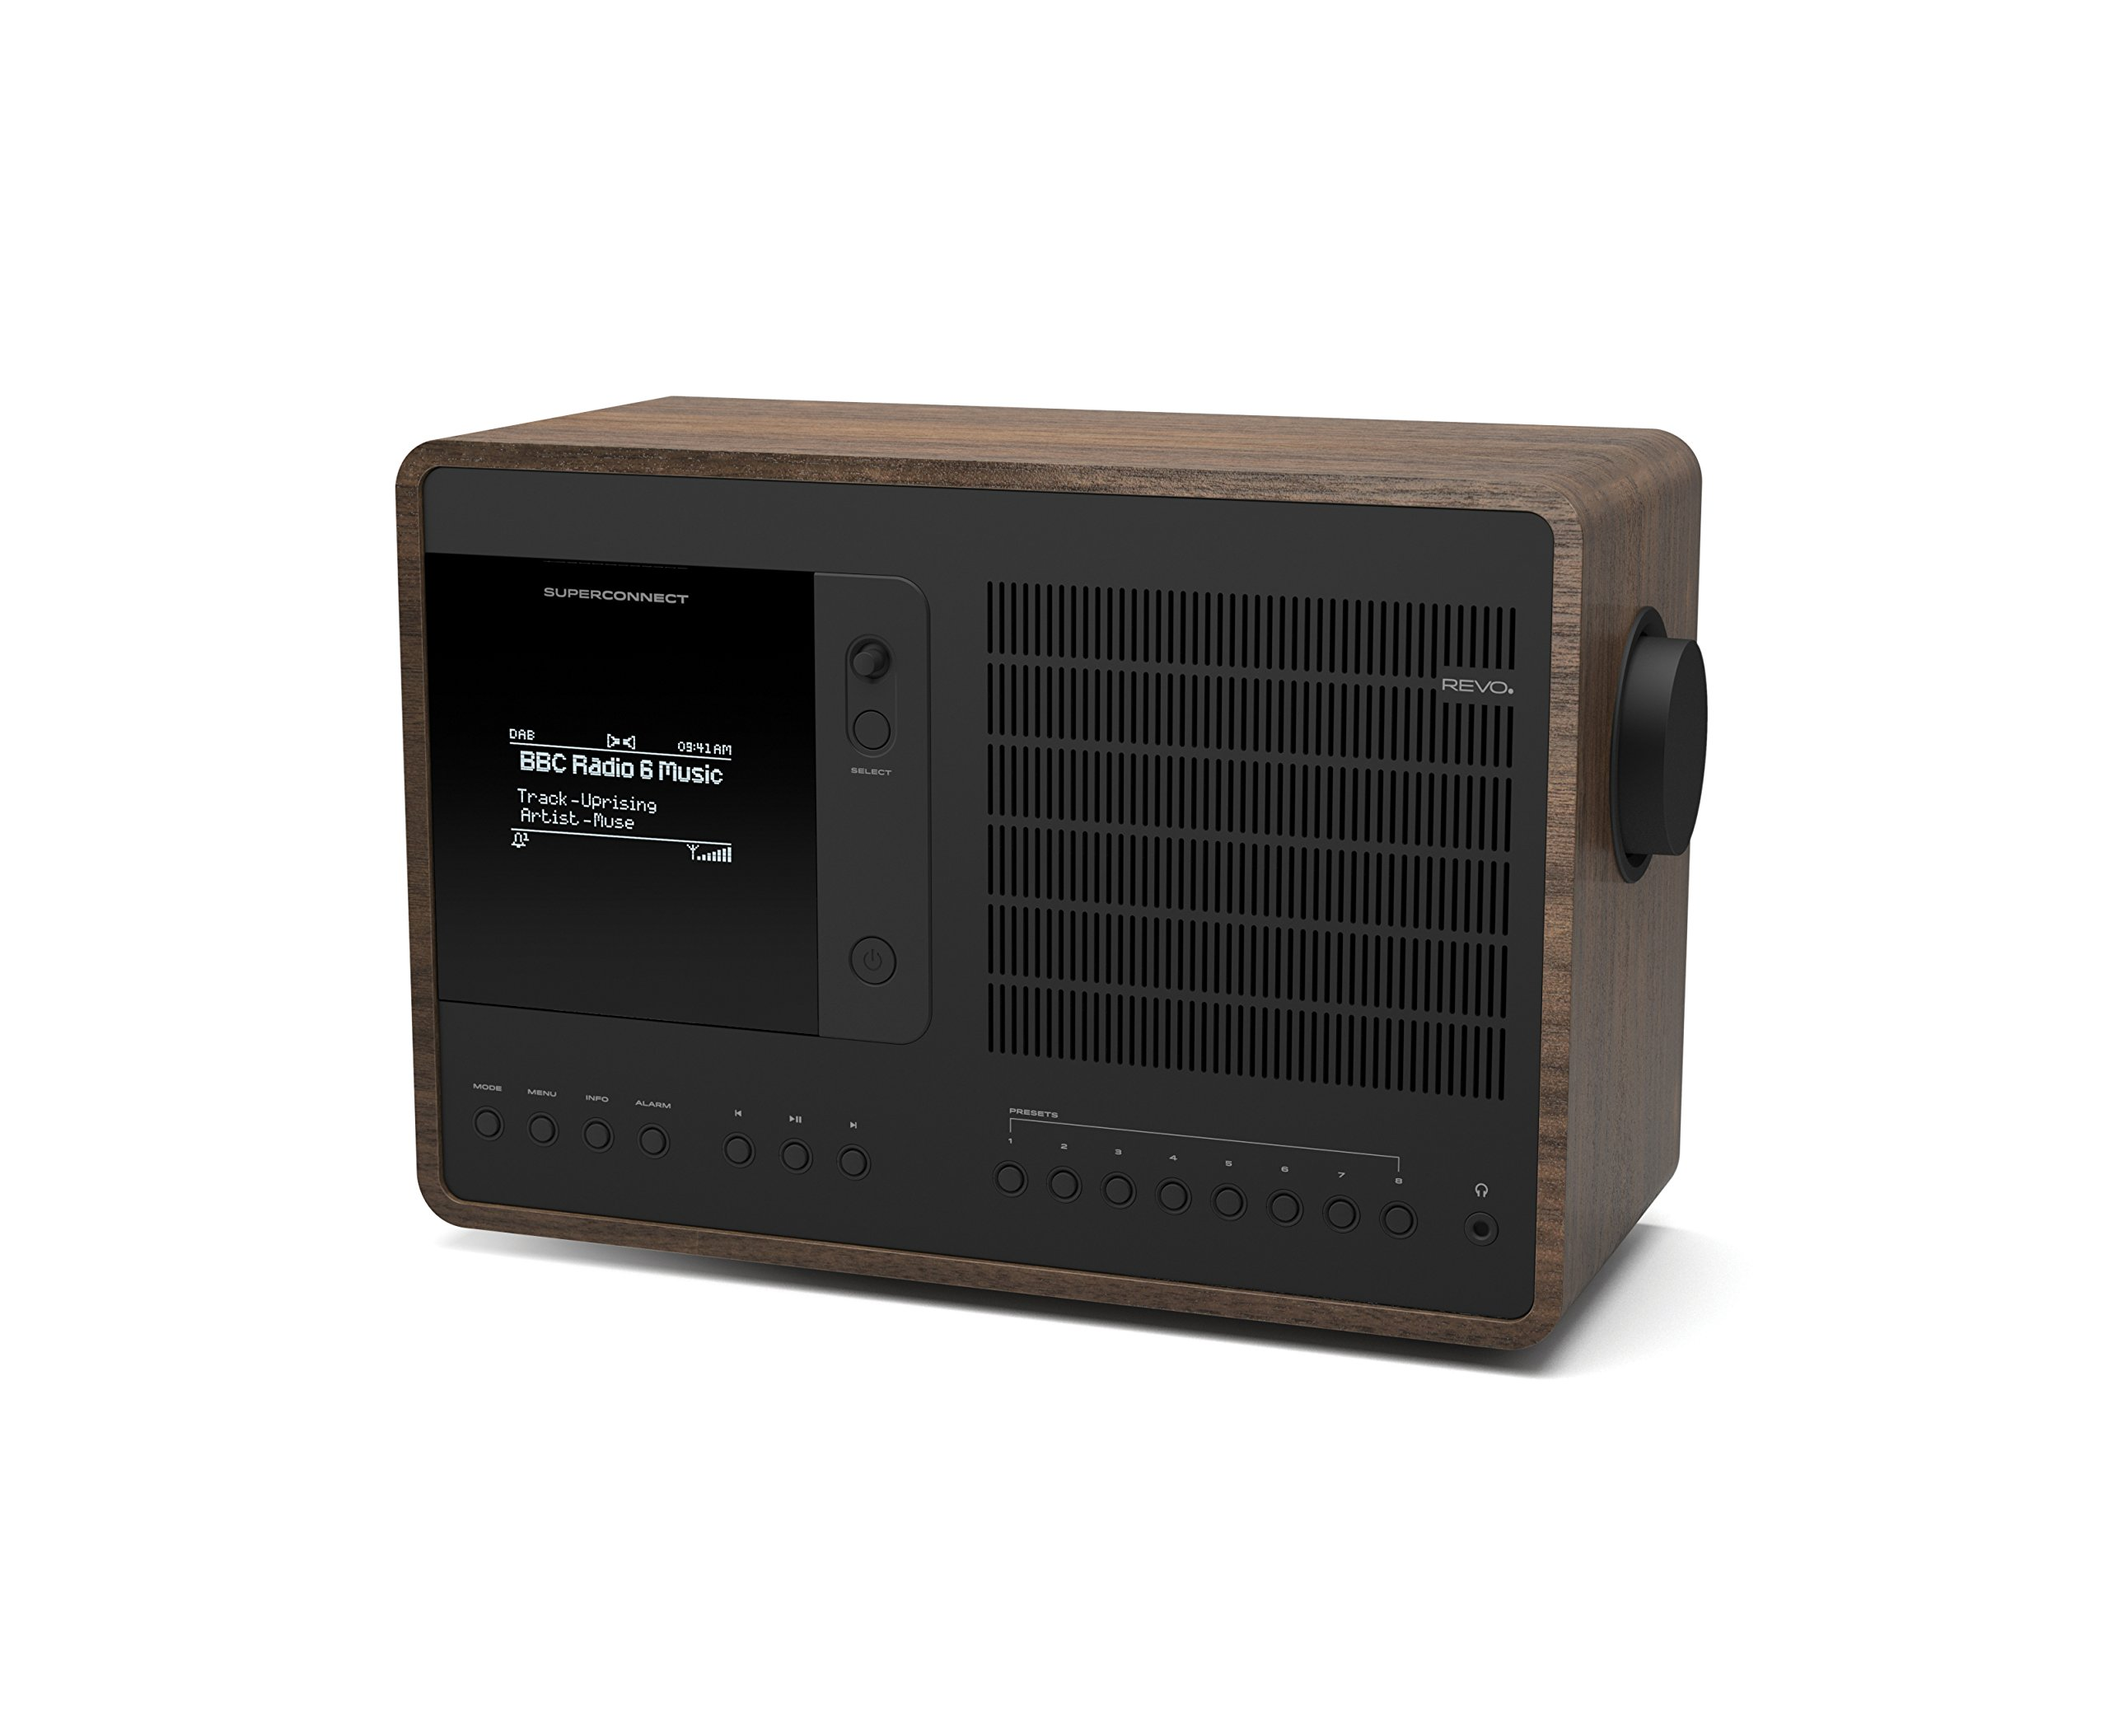 Revo SuperConnect Multi Format Deluxe Table Radio - Walnut/Black by Revo